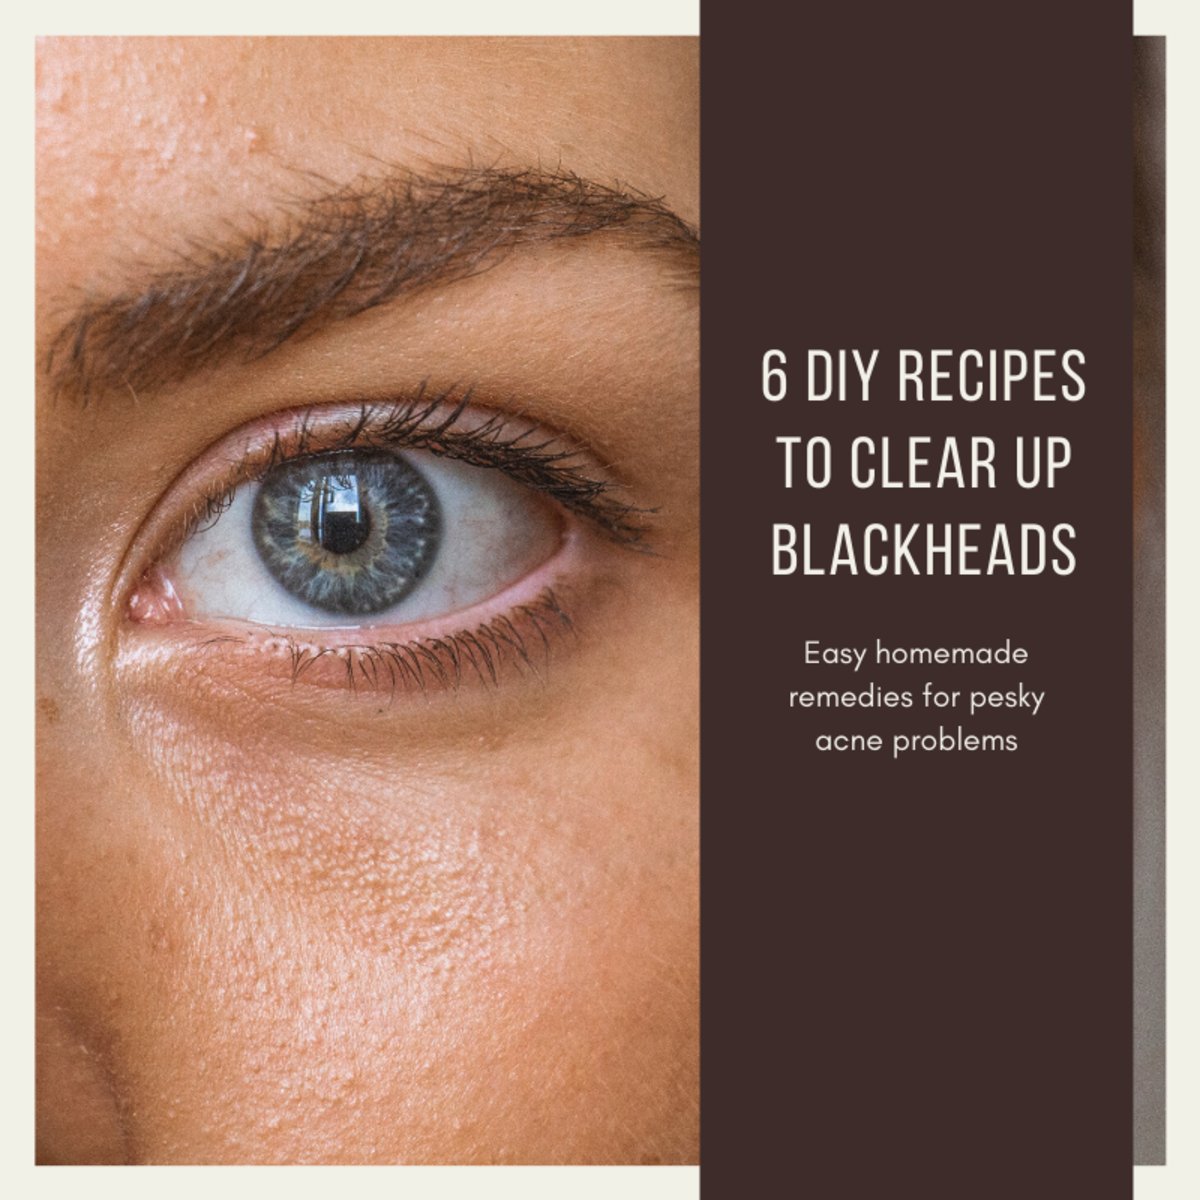 6 Homemade Recipes to Get Rid of Blackheads